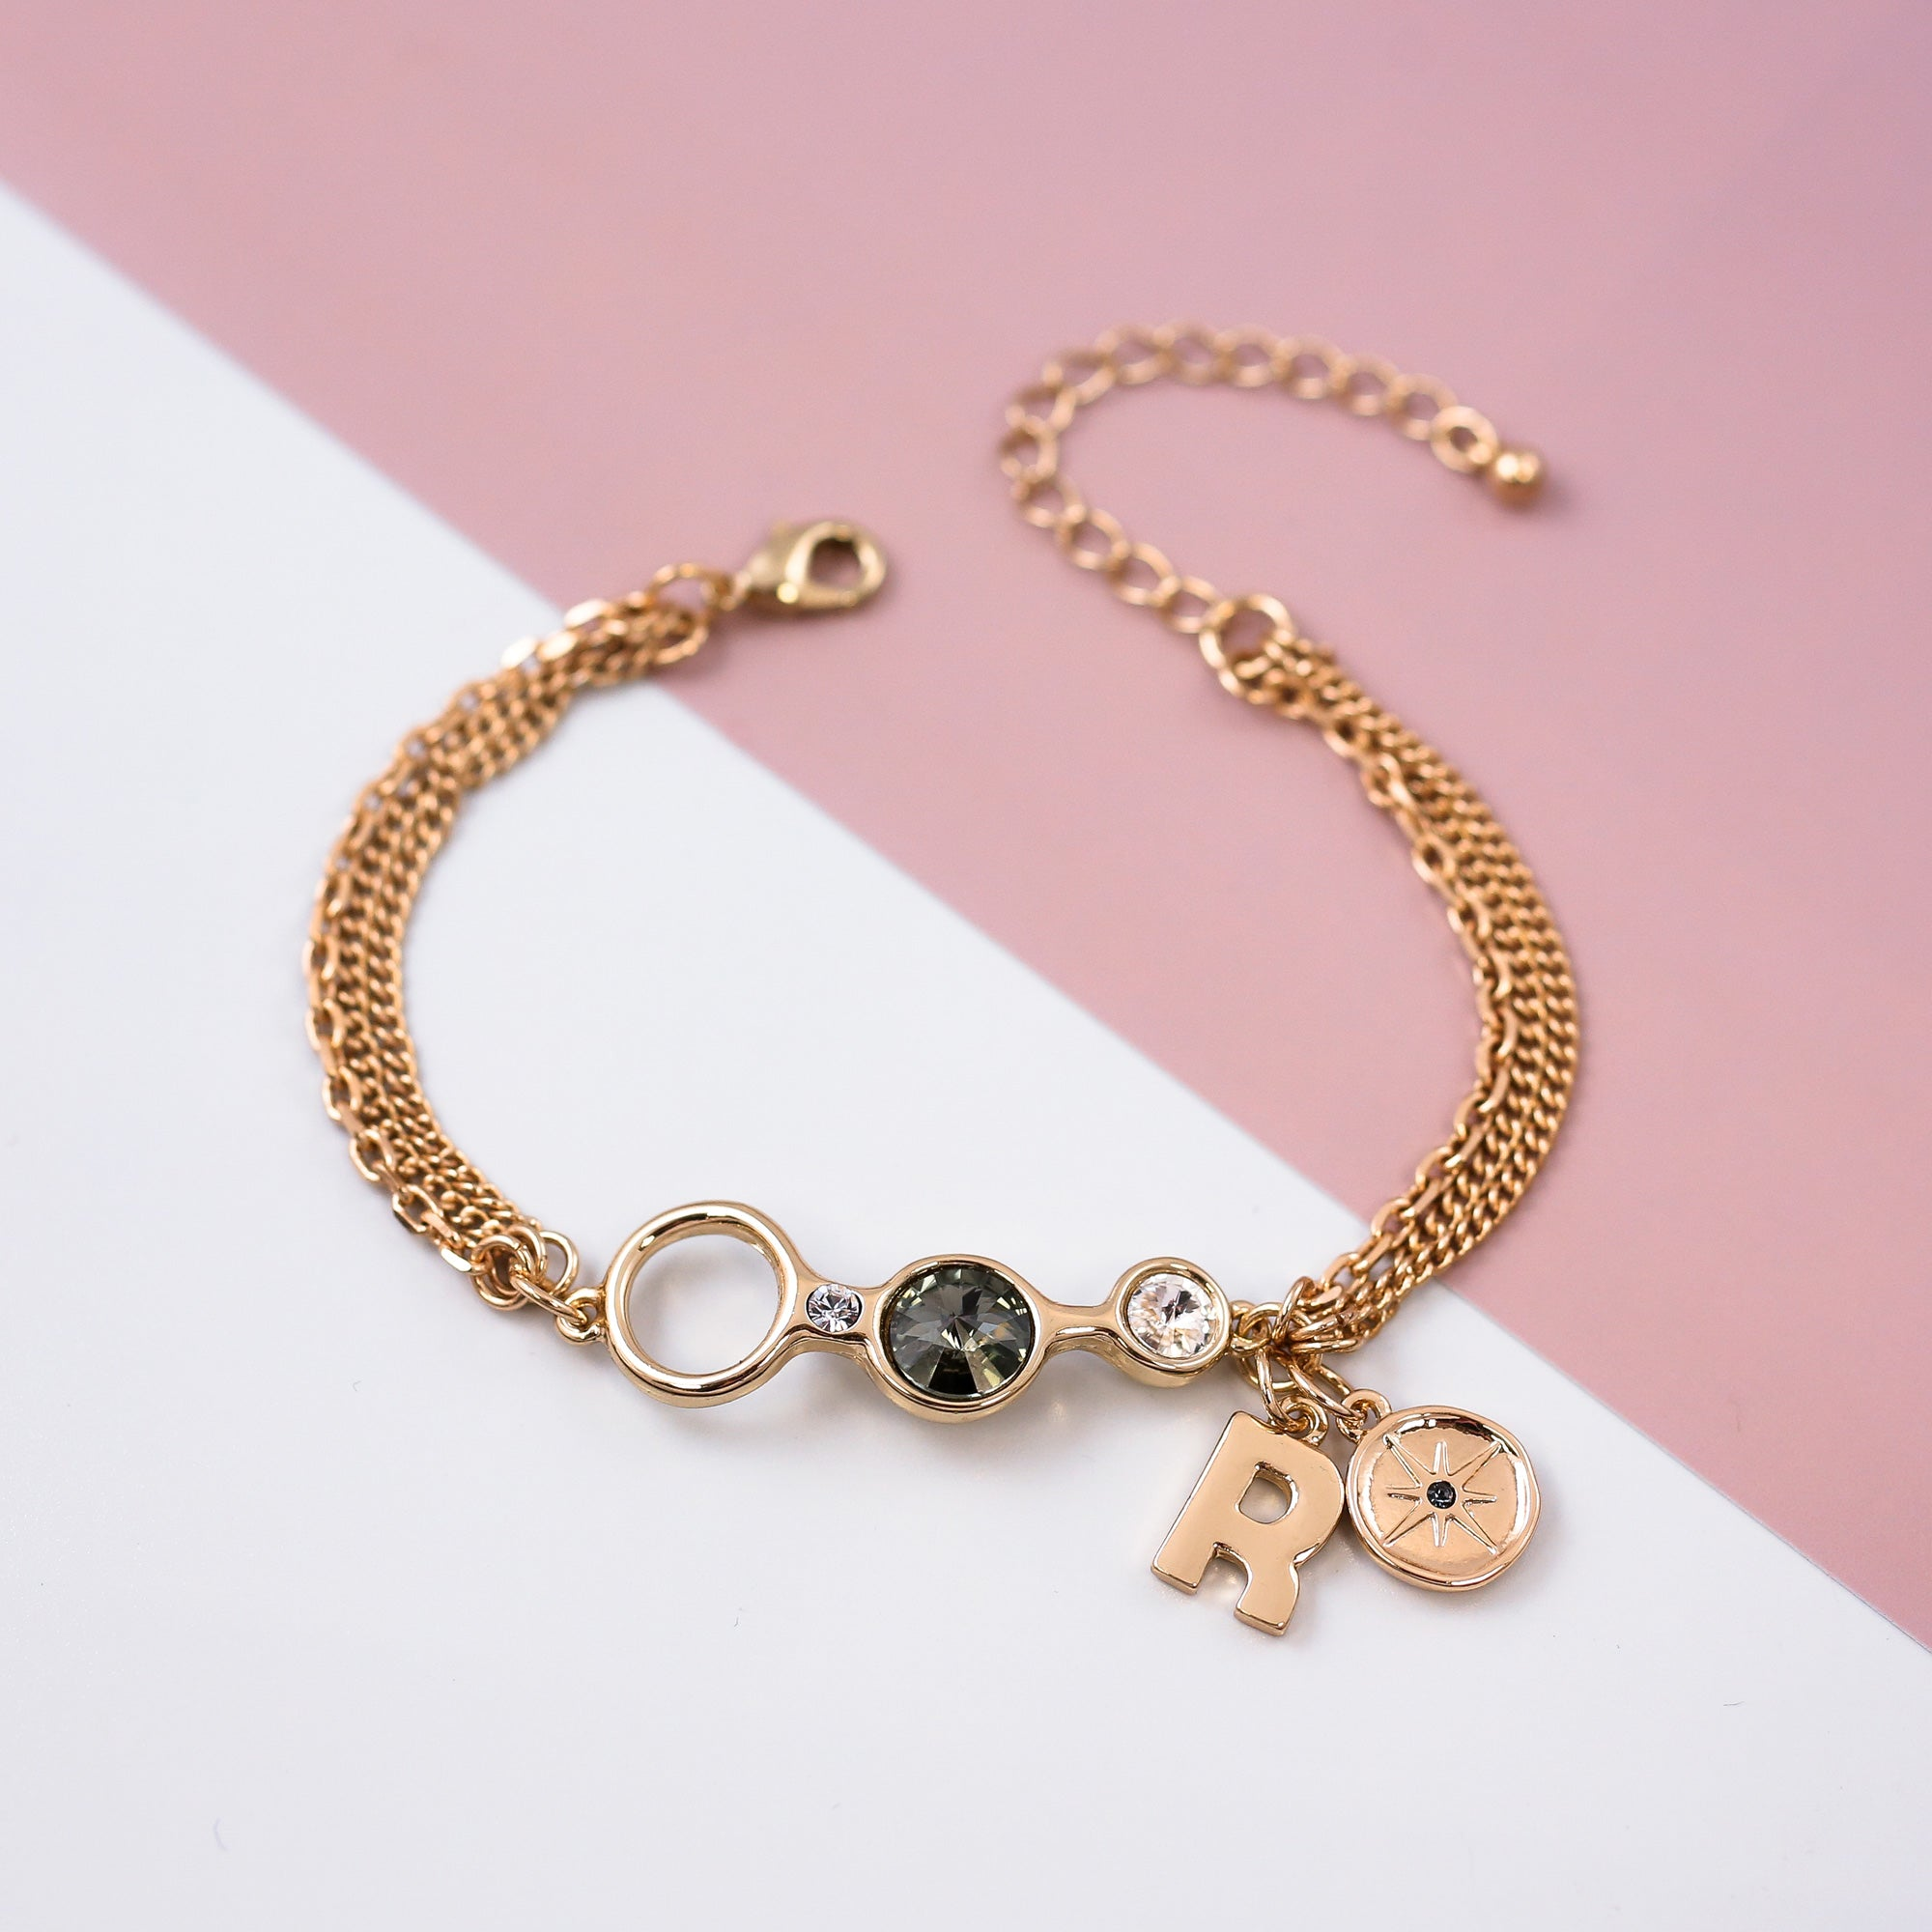 Charm Friendship Bracelet Gold & Crystal Silver Night